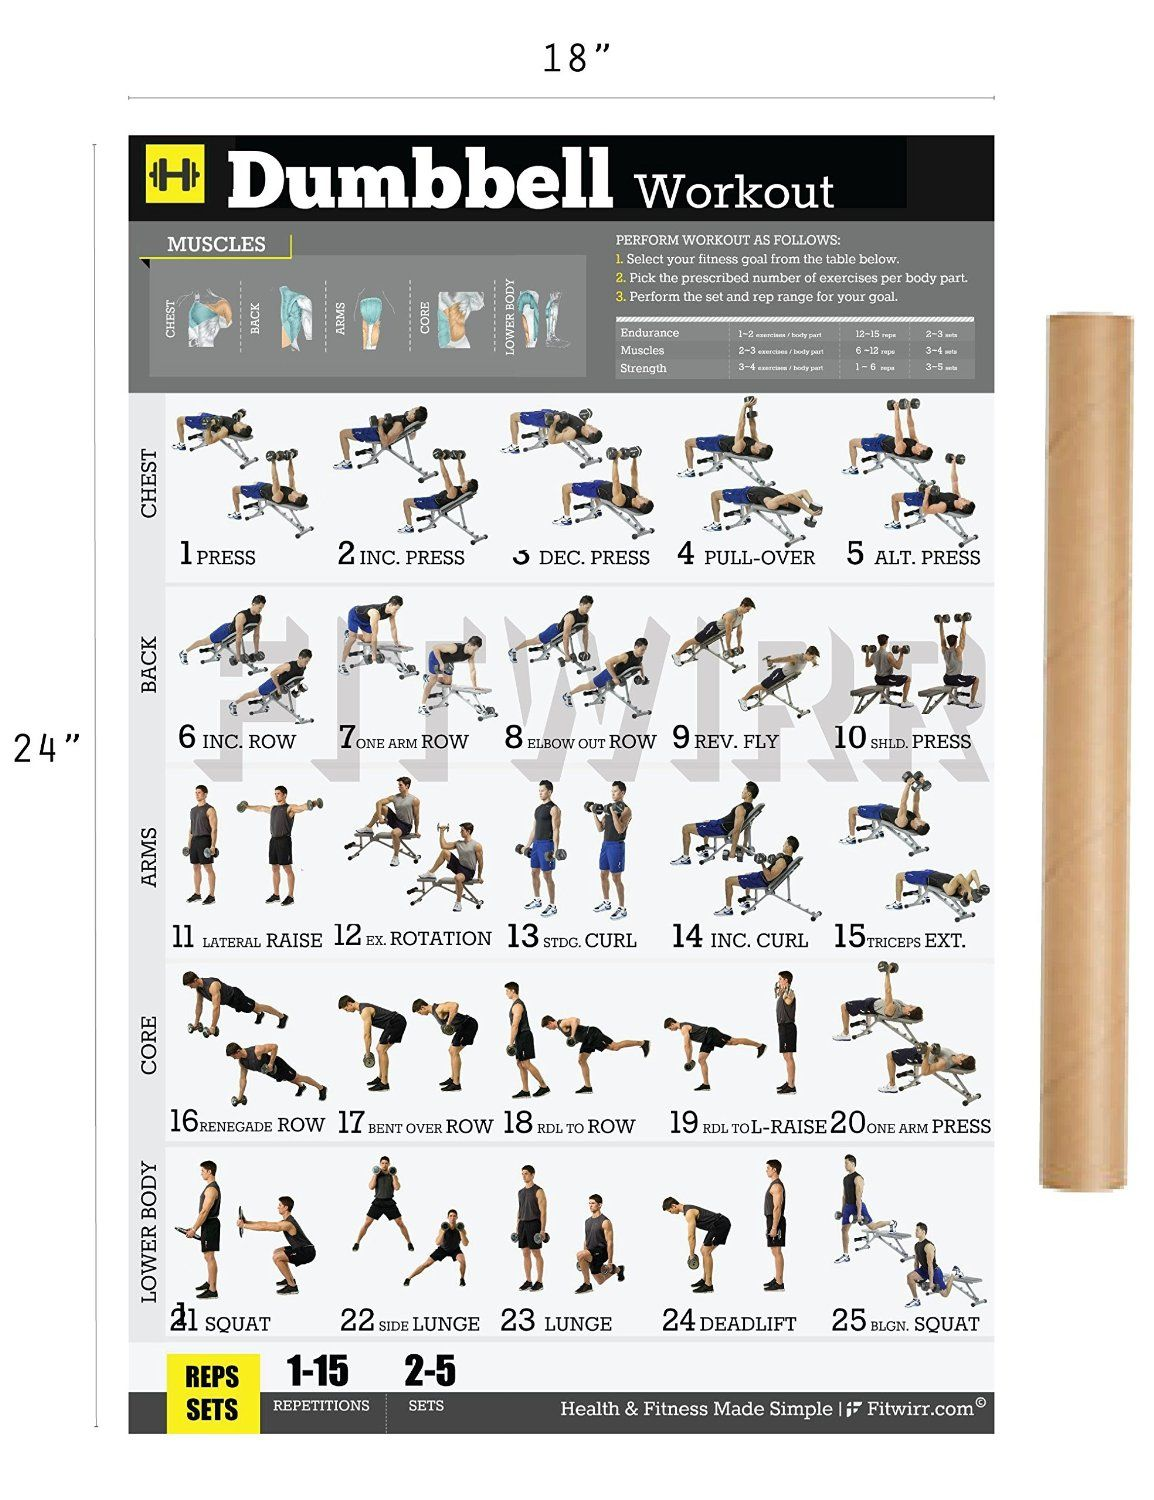 Gym Workout Chart For Chest For Men Fitwirr Dumbbell Workout Poster 19x27 Dumbbell Exercises